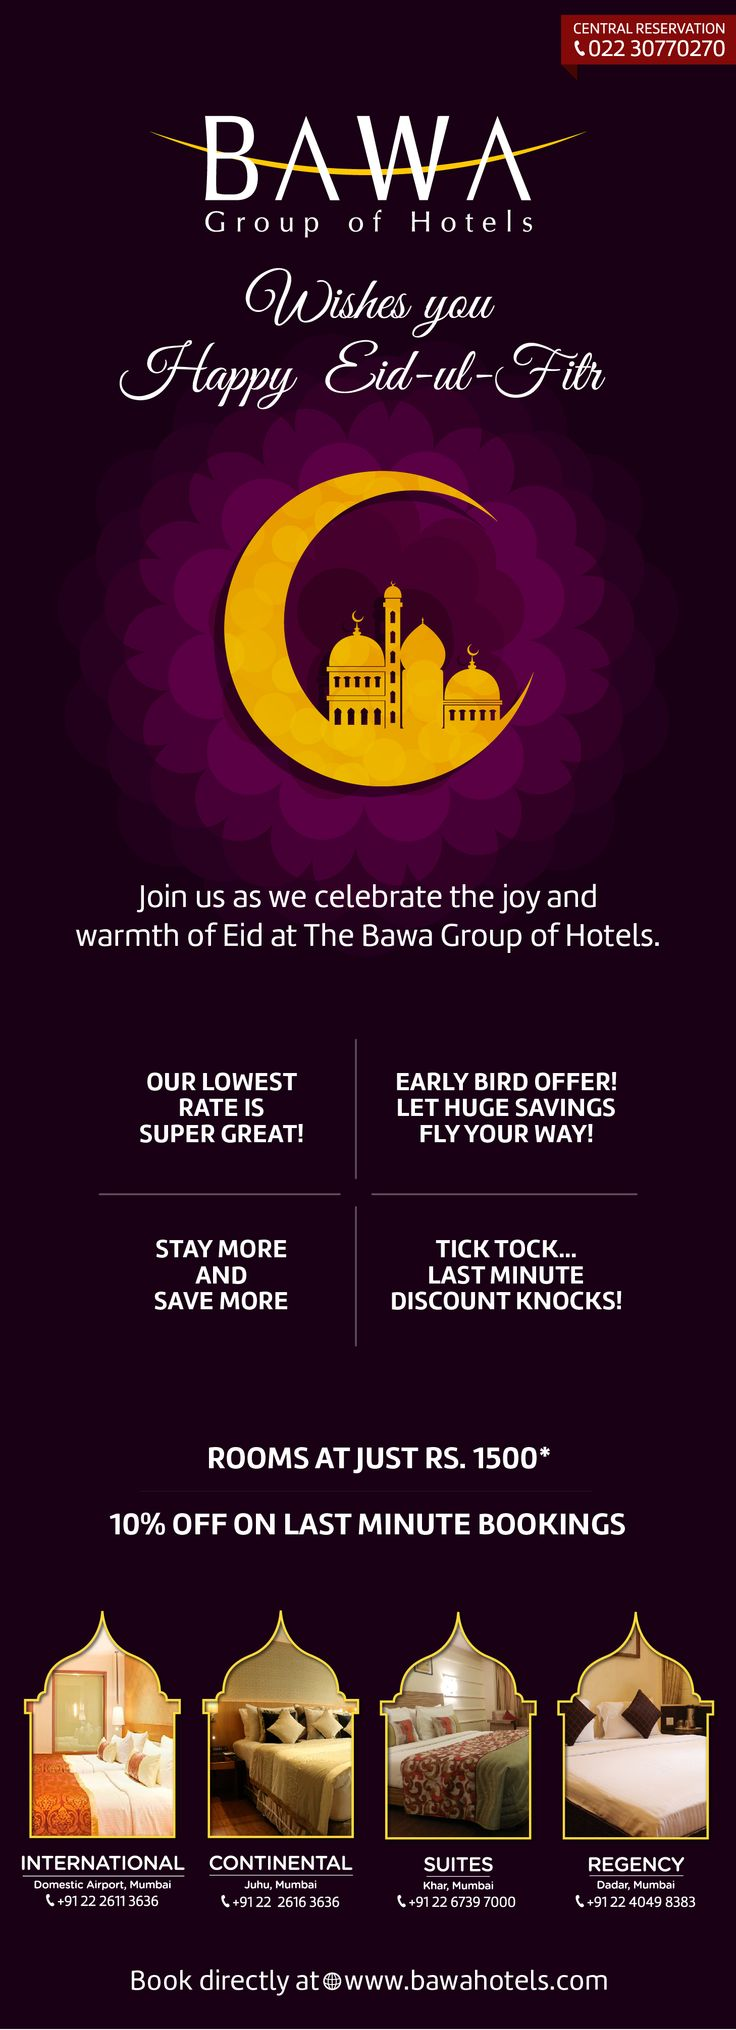 Celebrate this Eid with the Bawa Group of Hotels. // Take advantage of the incredible offers we have for you this festive season.